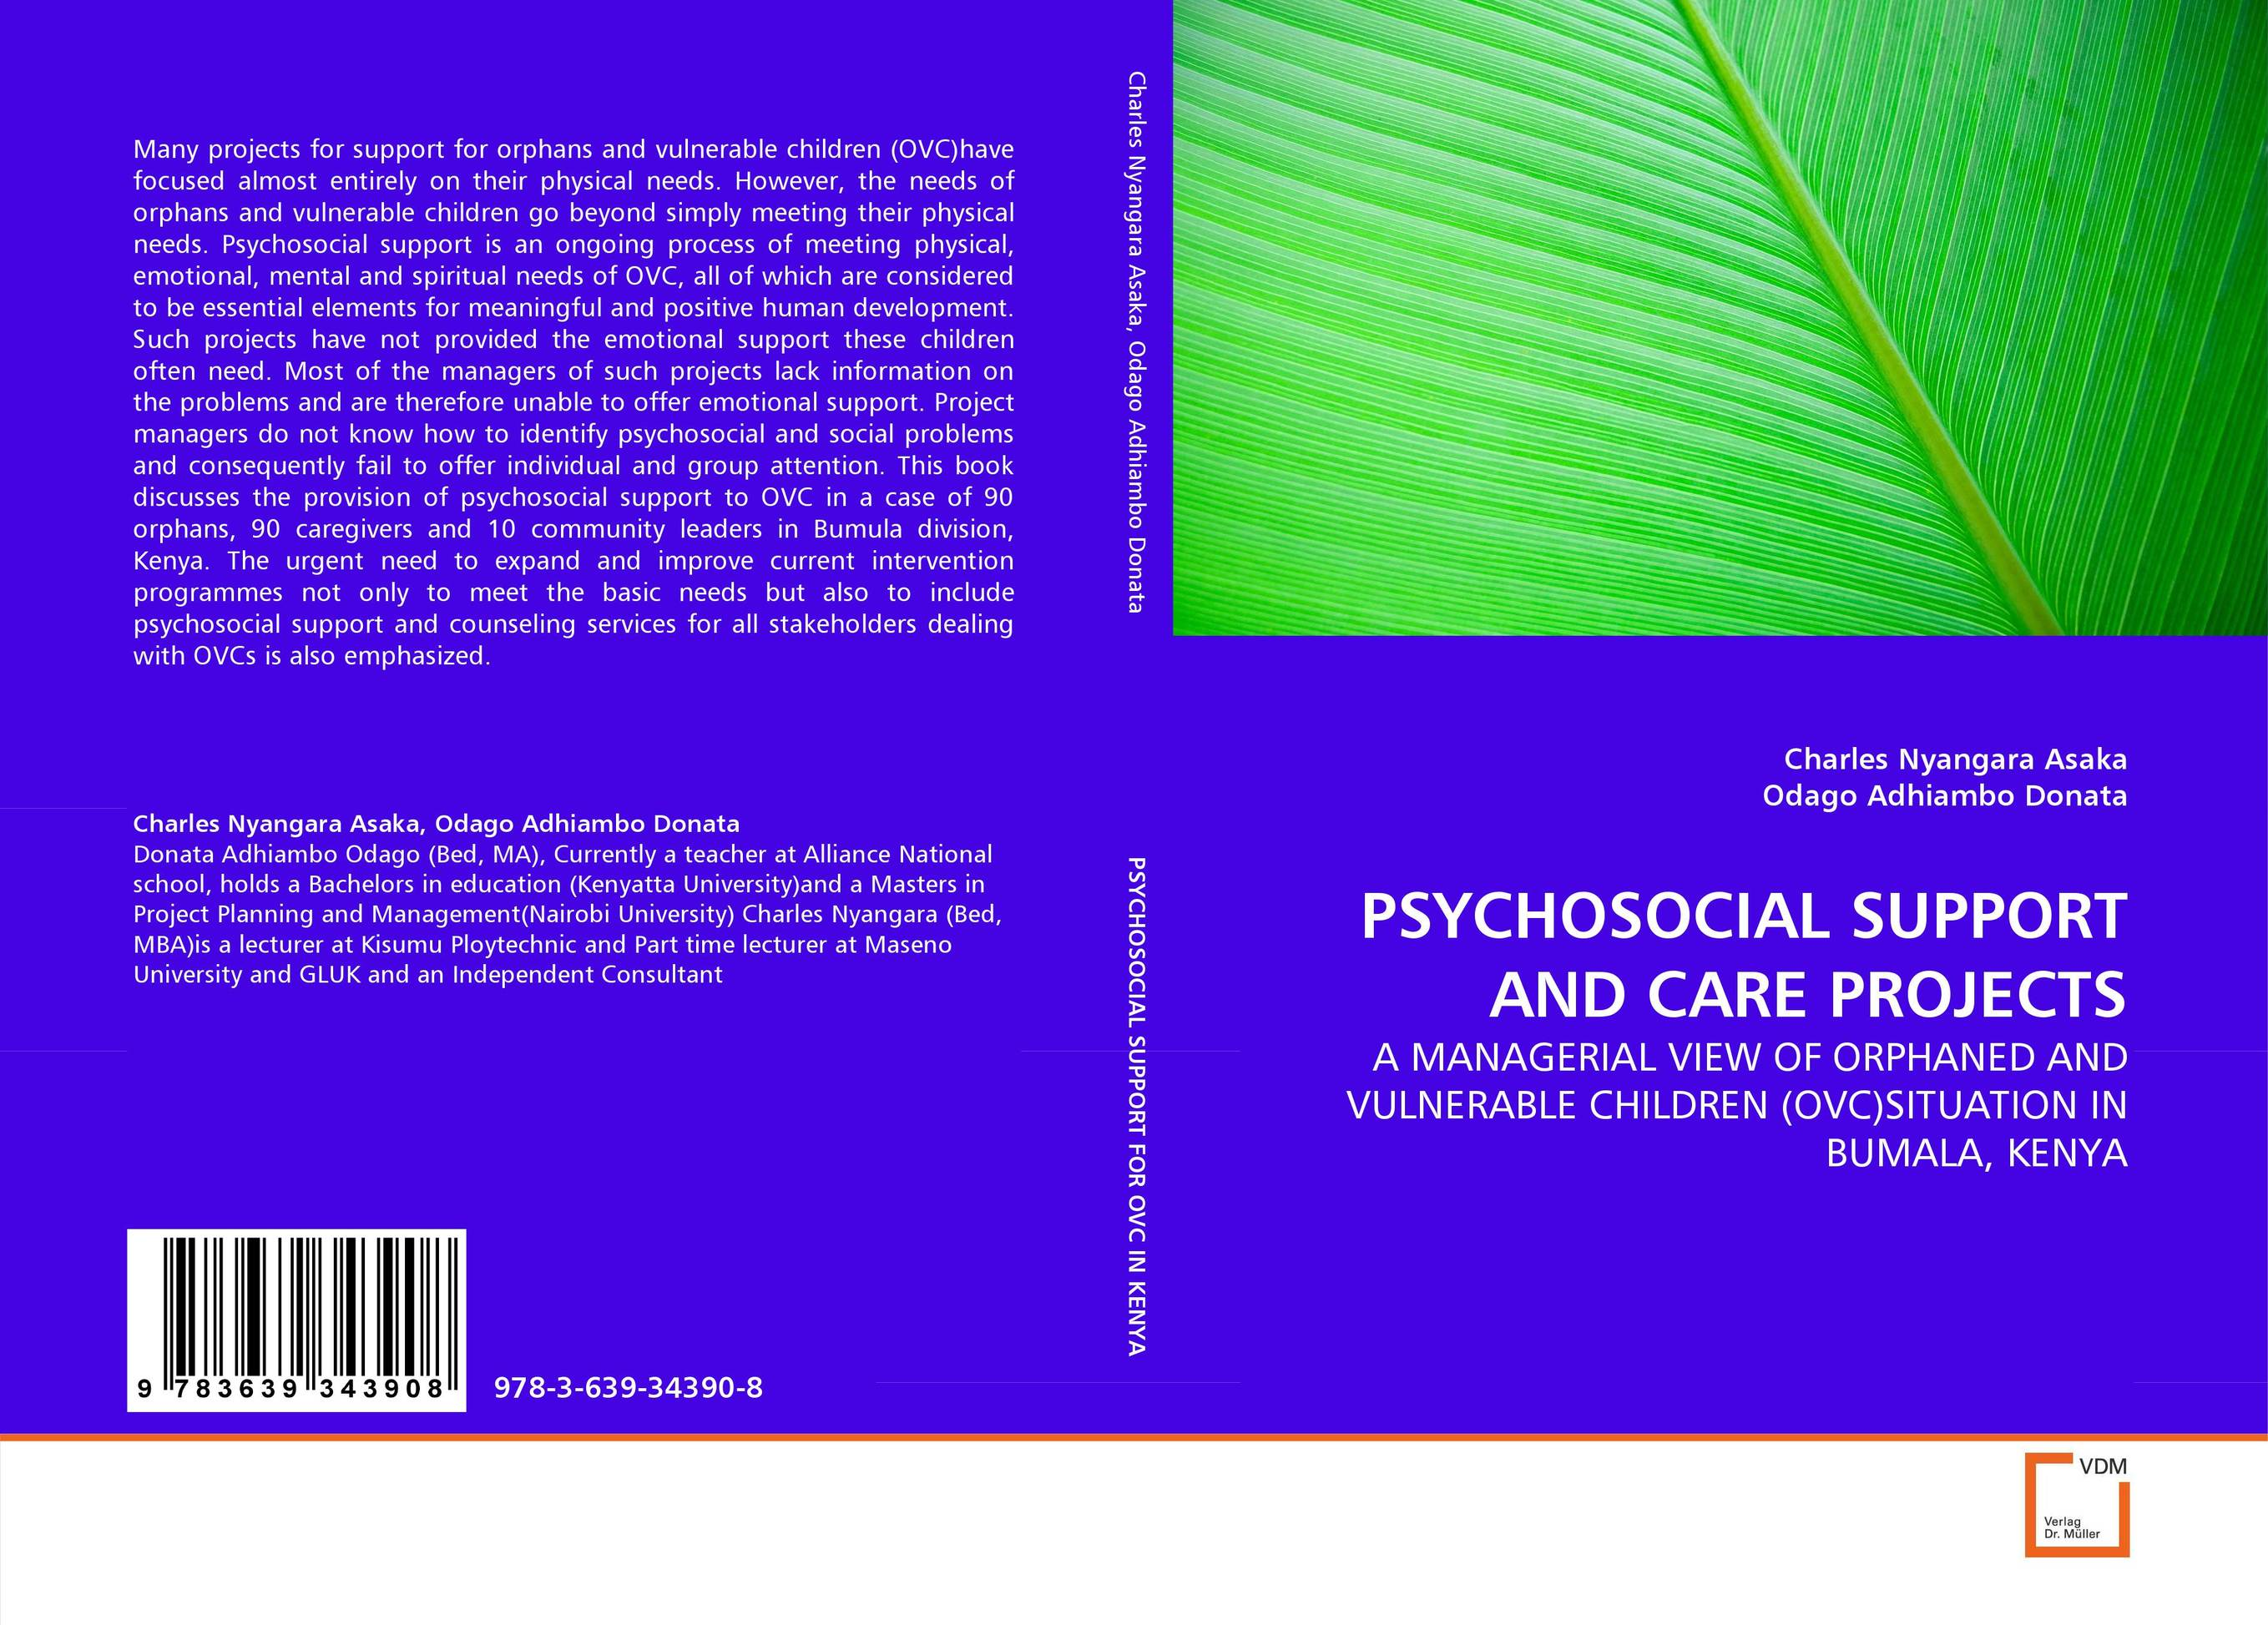 PSYCHOSOCIAL SUPPORT AND CARE PROJECTS postpartum psychosocial support